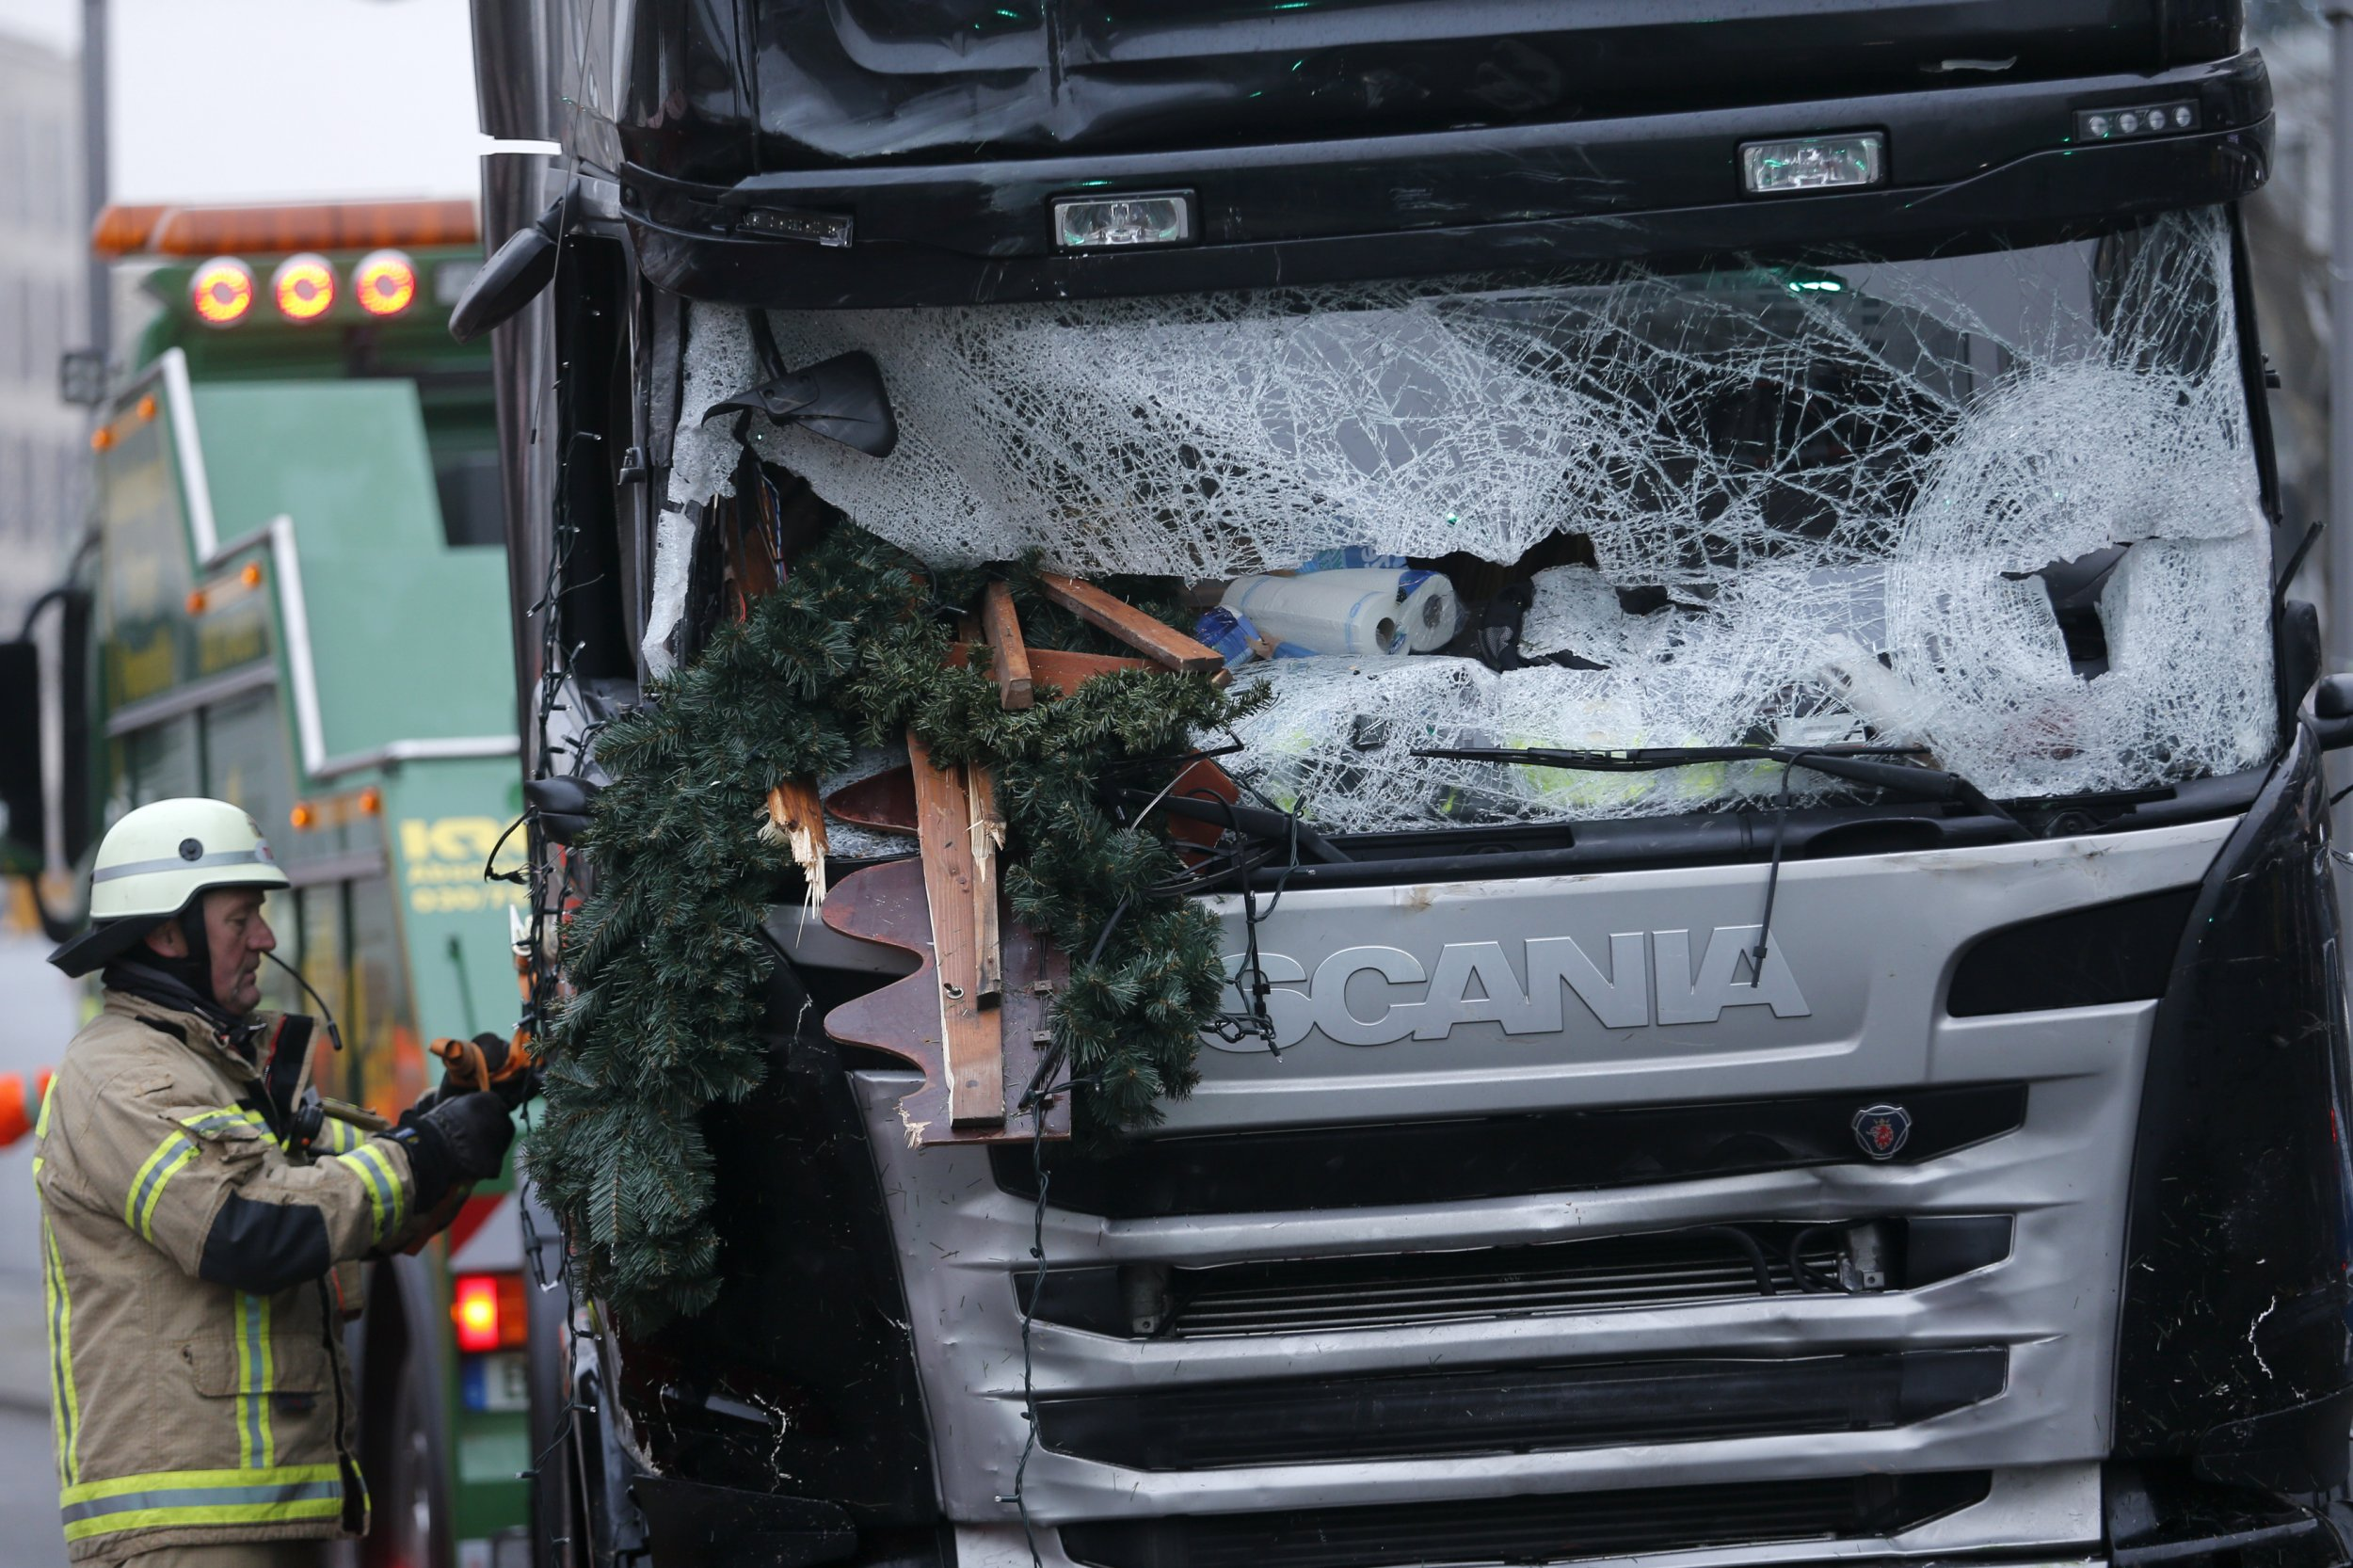 The lorry used in the Berlin Christmas market attack